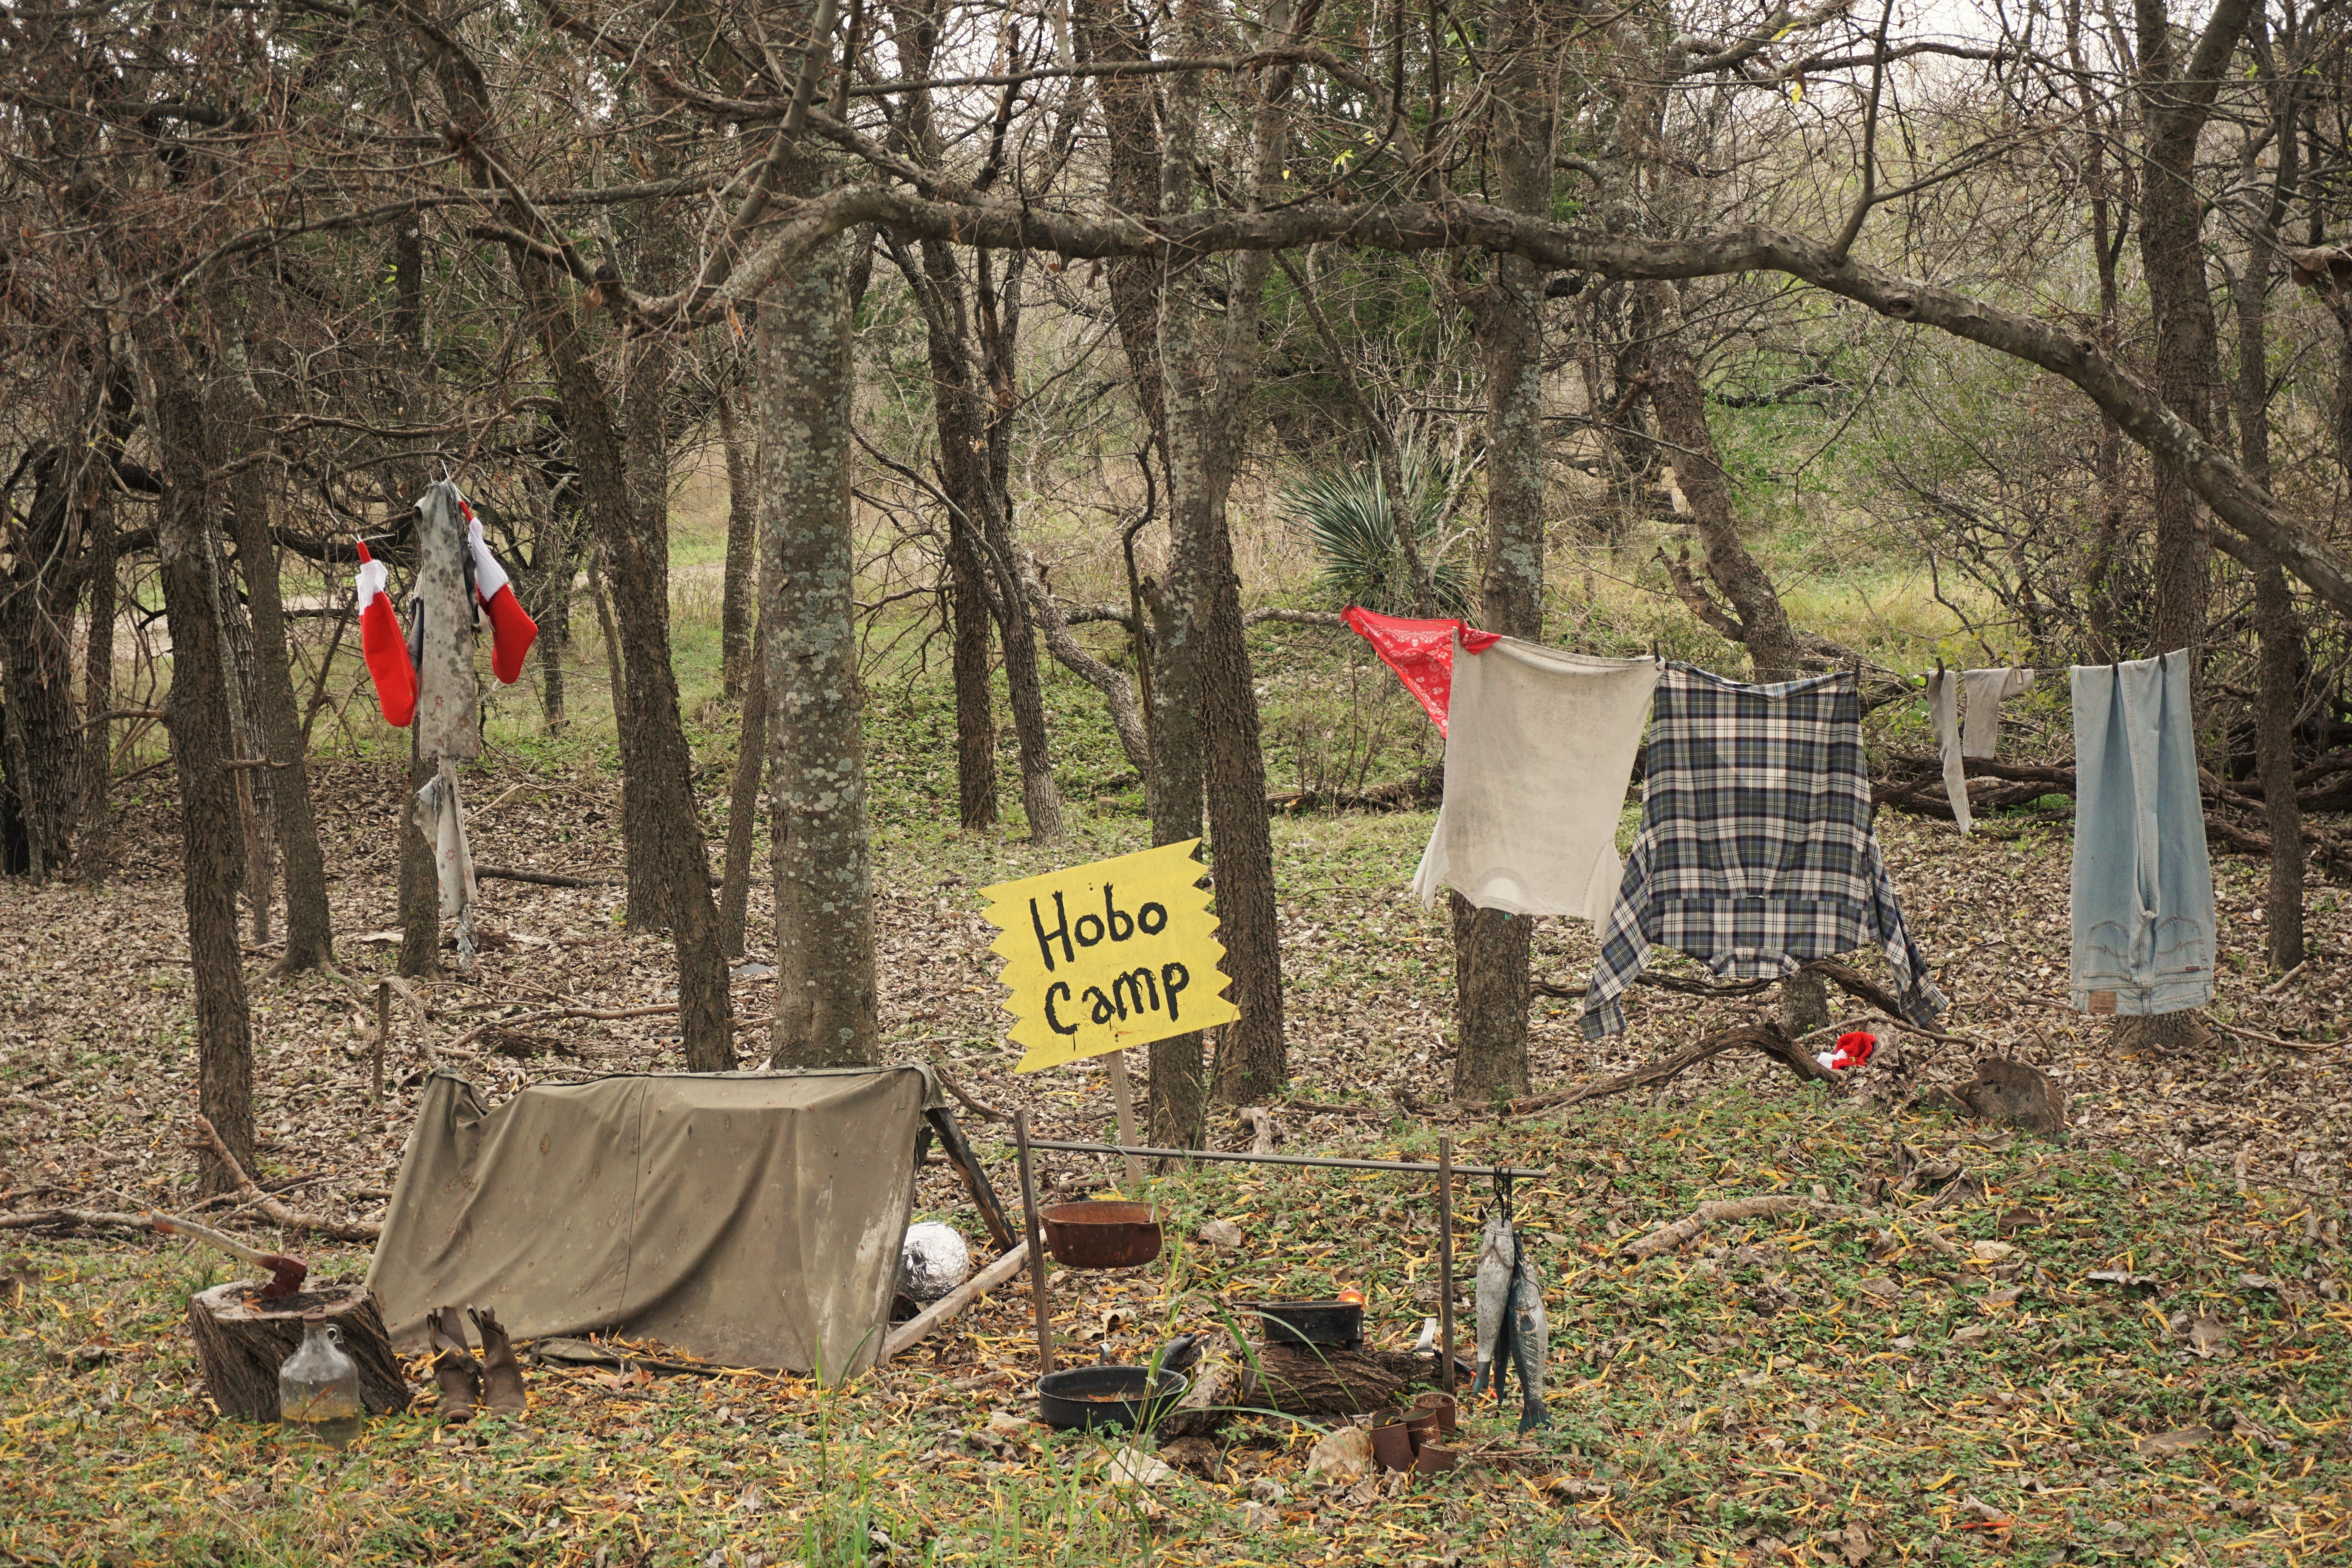 Hobo Camp in forest